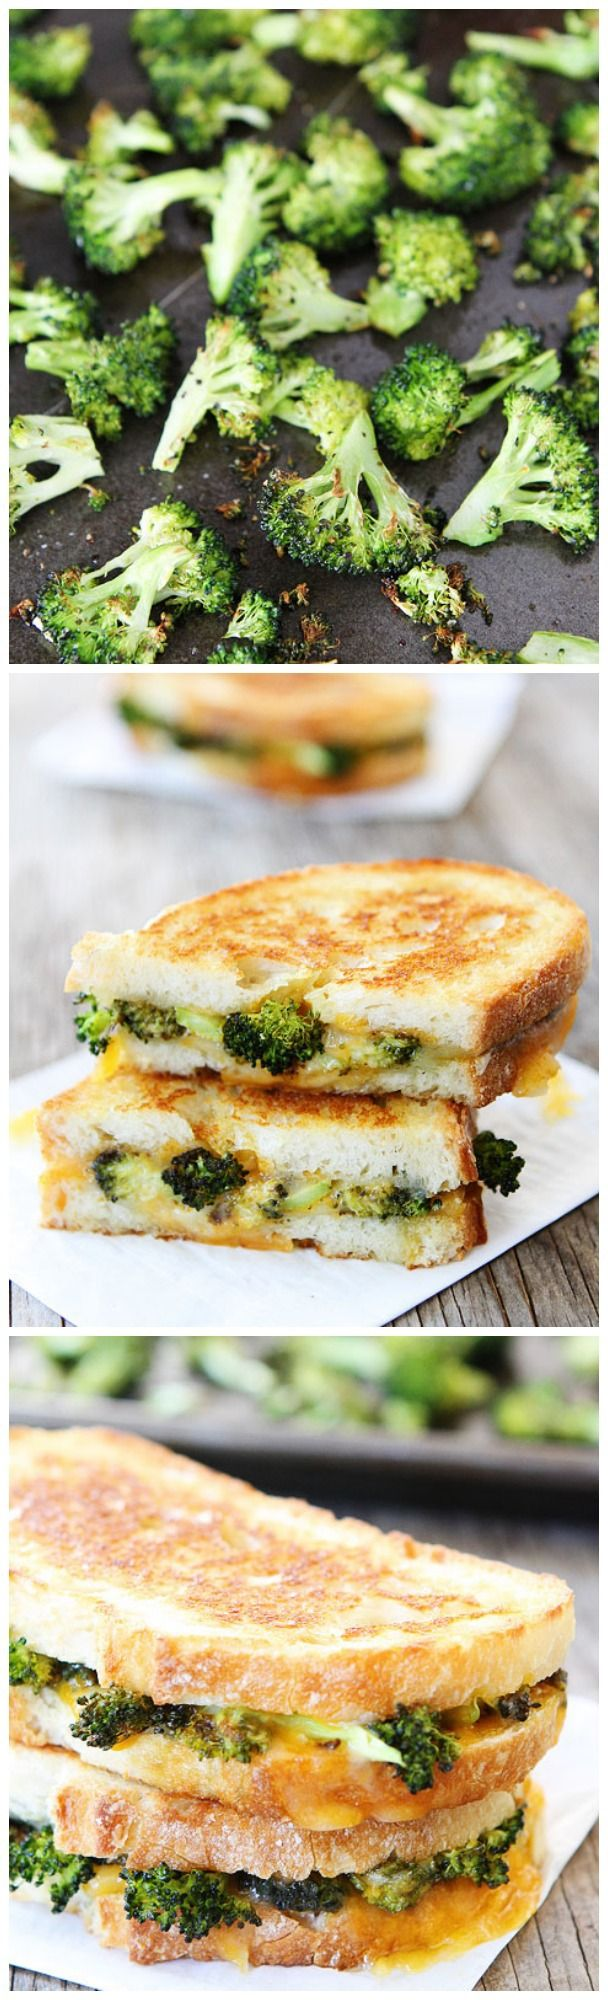 Roasted Broccoli Grilled Cheese Sandwich - Great for lunch or dinner!